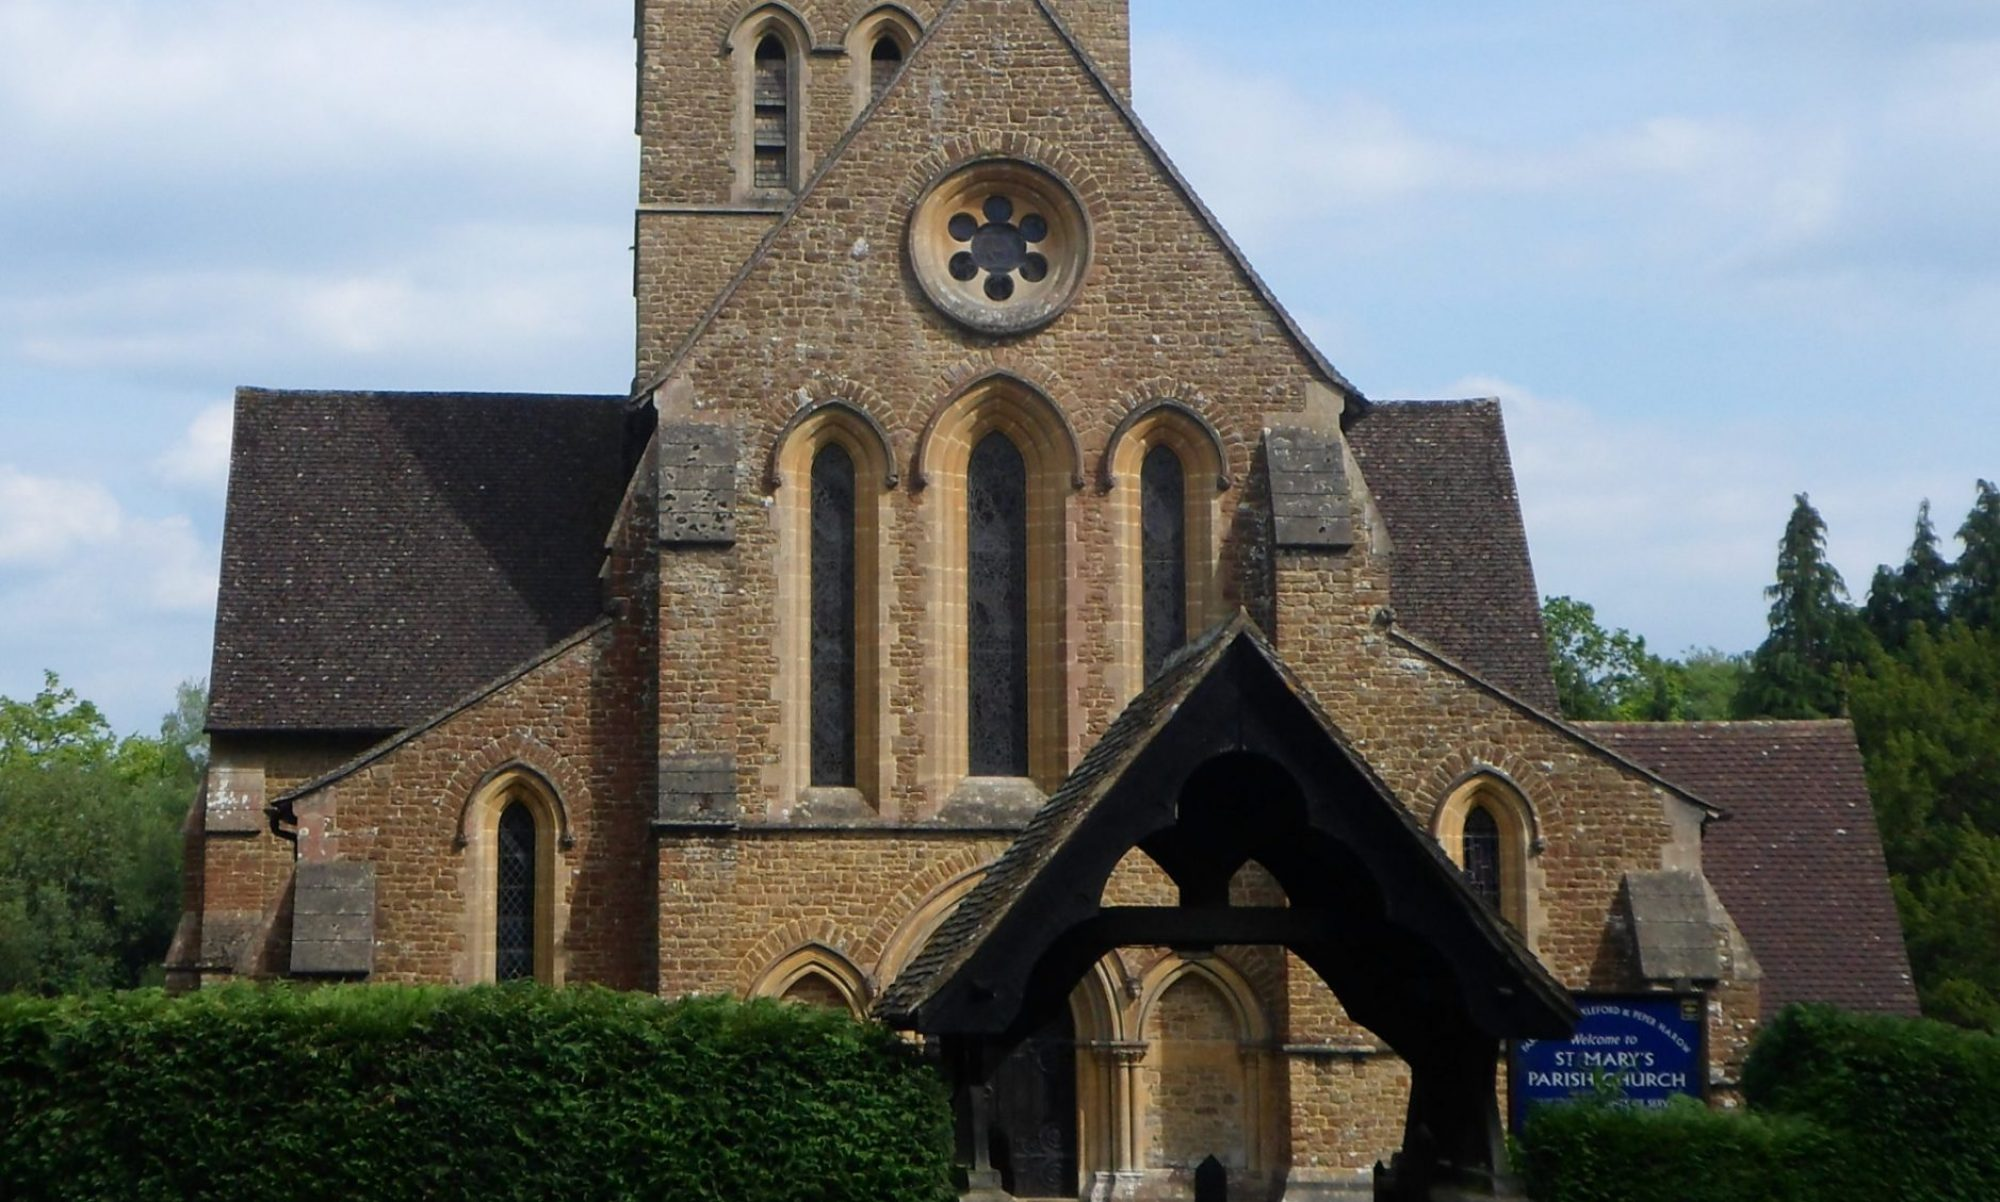 Parish churches of Elstead, Thursley, Shackleford & Peper Harow